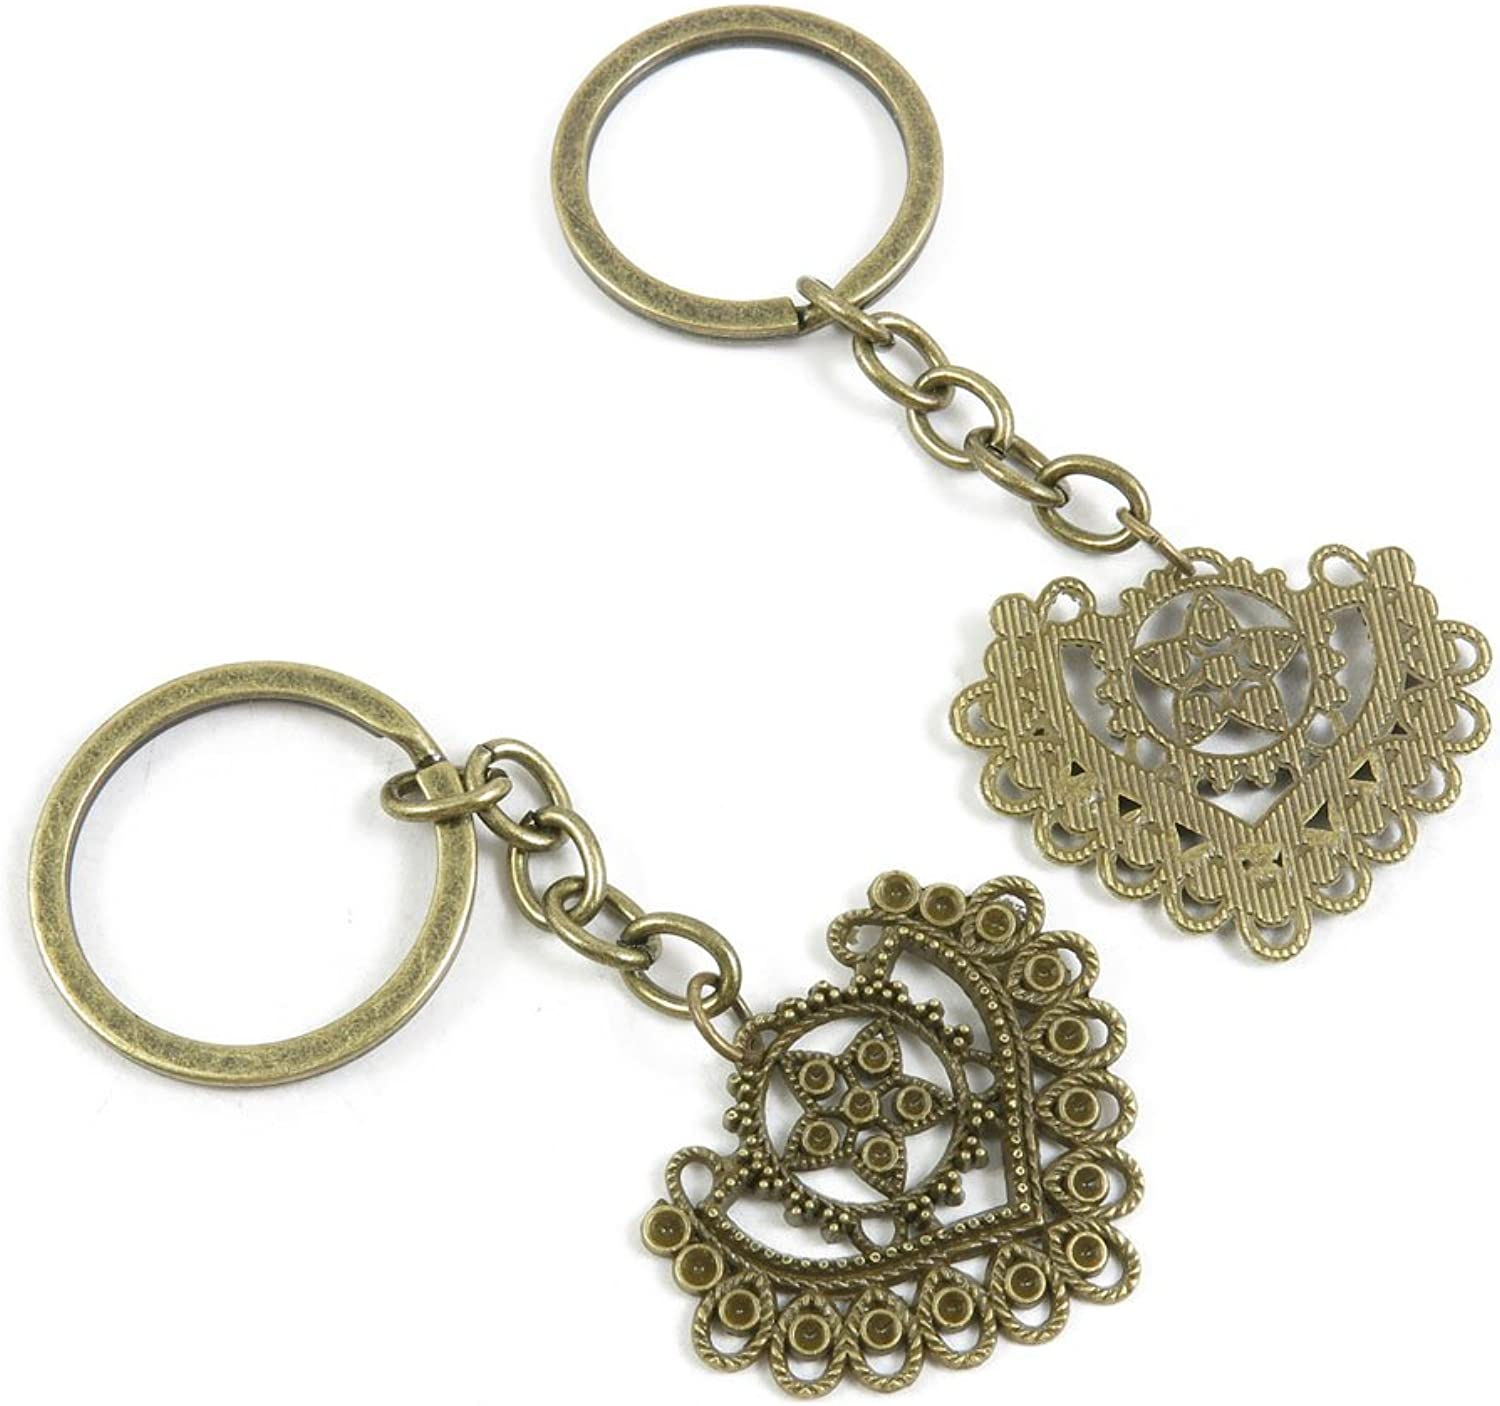 140 Pieces Fashion Jewelry Keyring Keychain Door Car Key Tag Ring Chain Supplier Supply Wholesale Bulk Lots B6OG8 Earring Connector Joiner